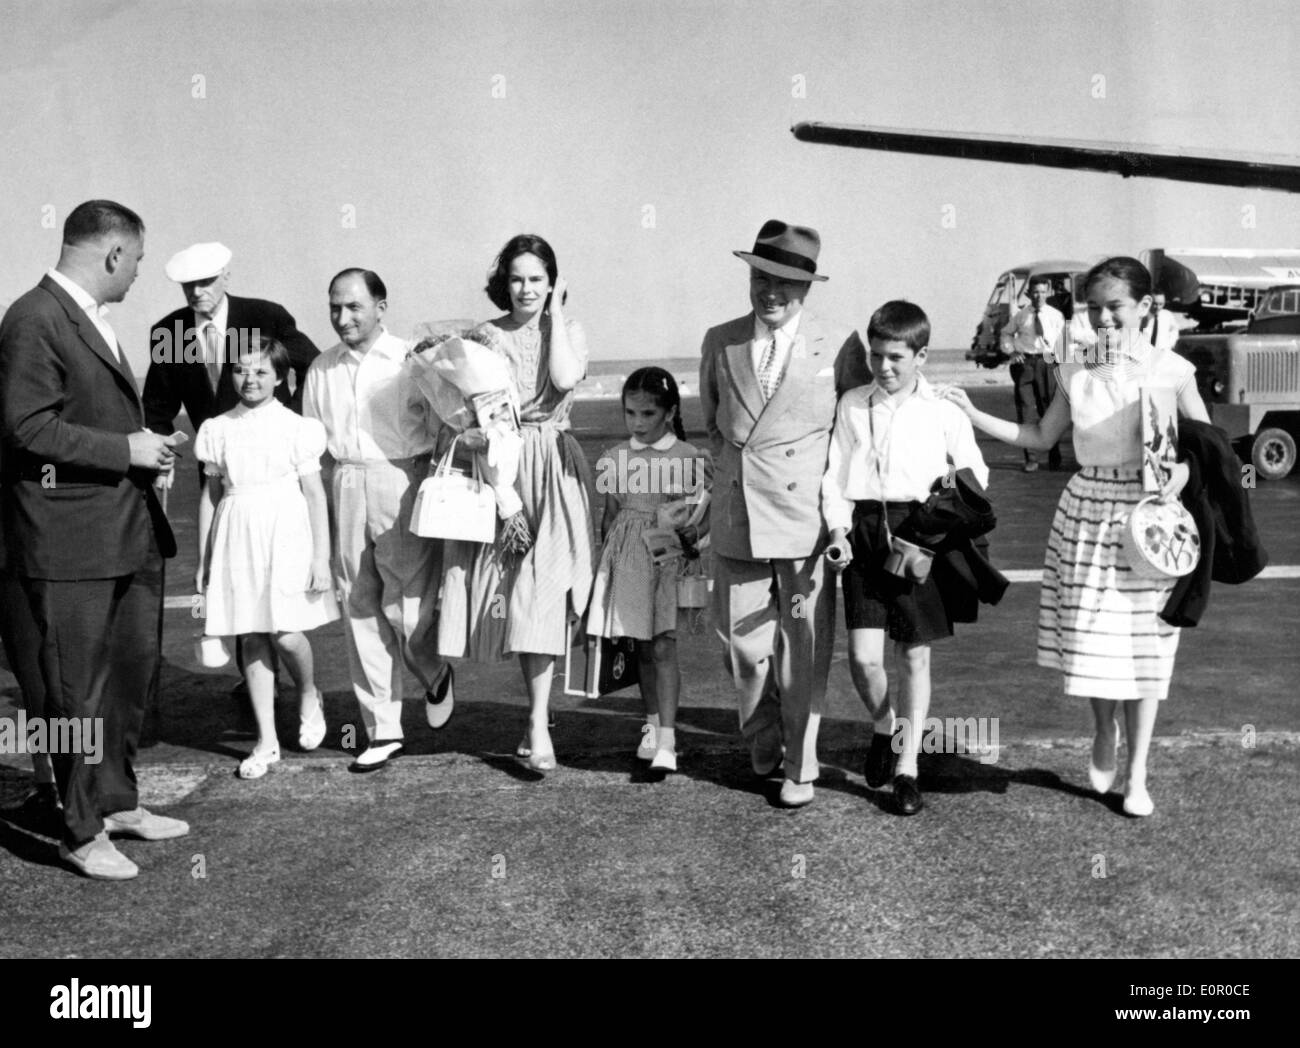 Actor Charlie Chaplin and his family arriving in Paris - Stock Image